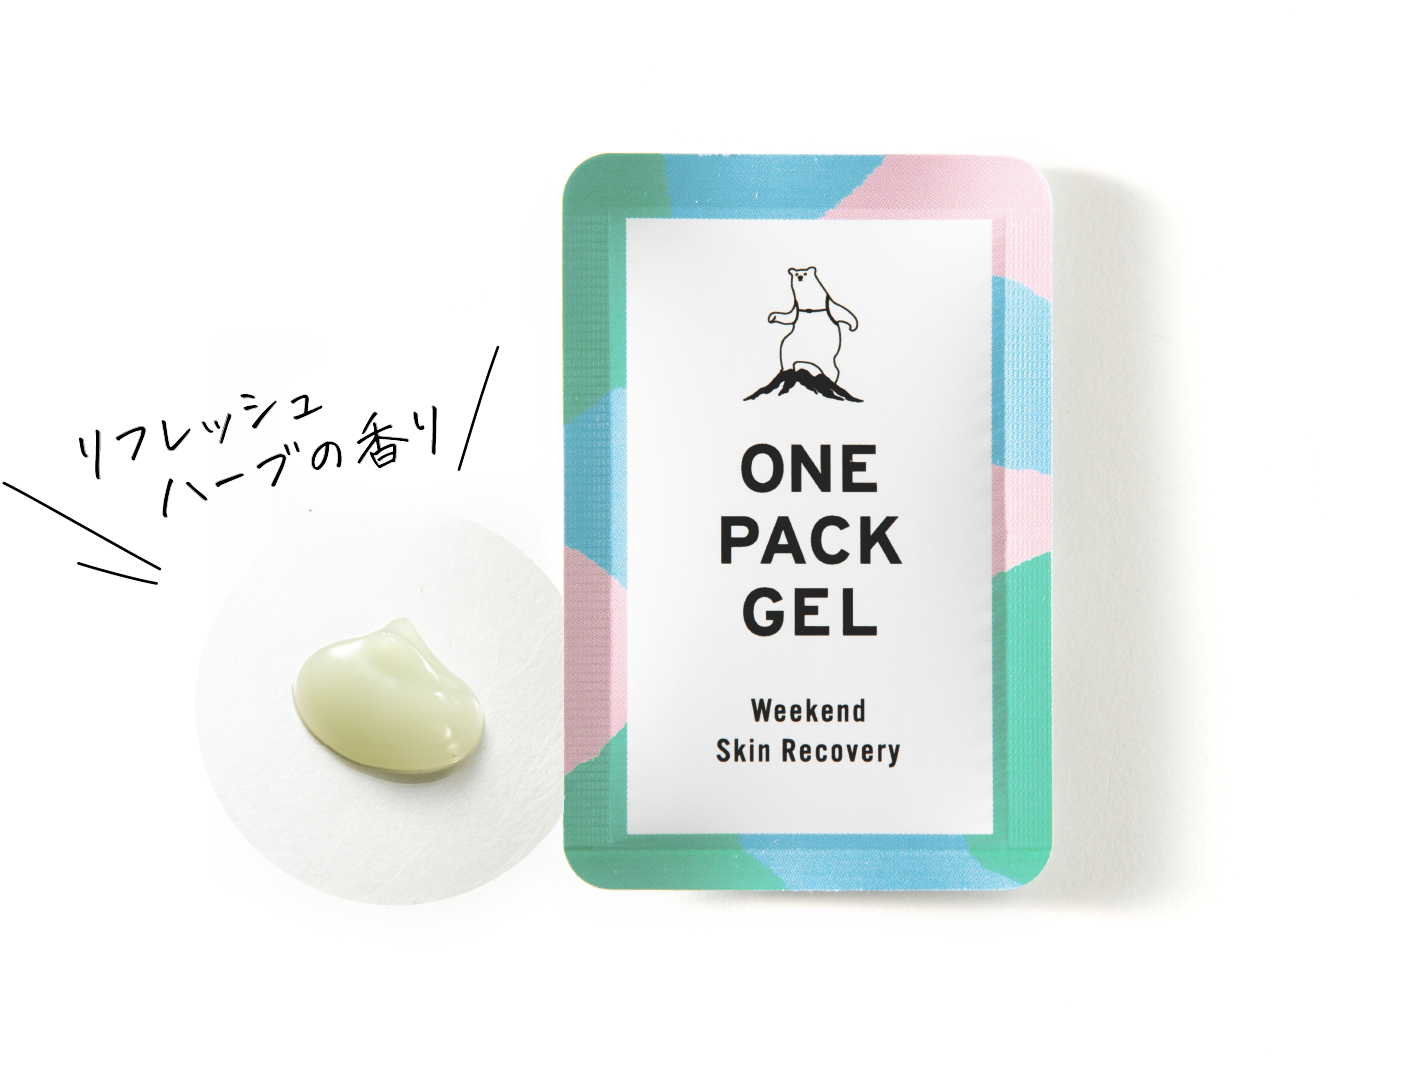 one pack gel